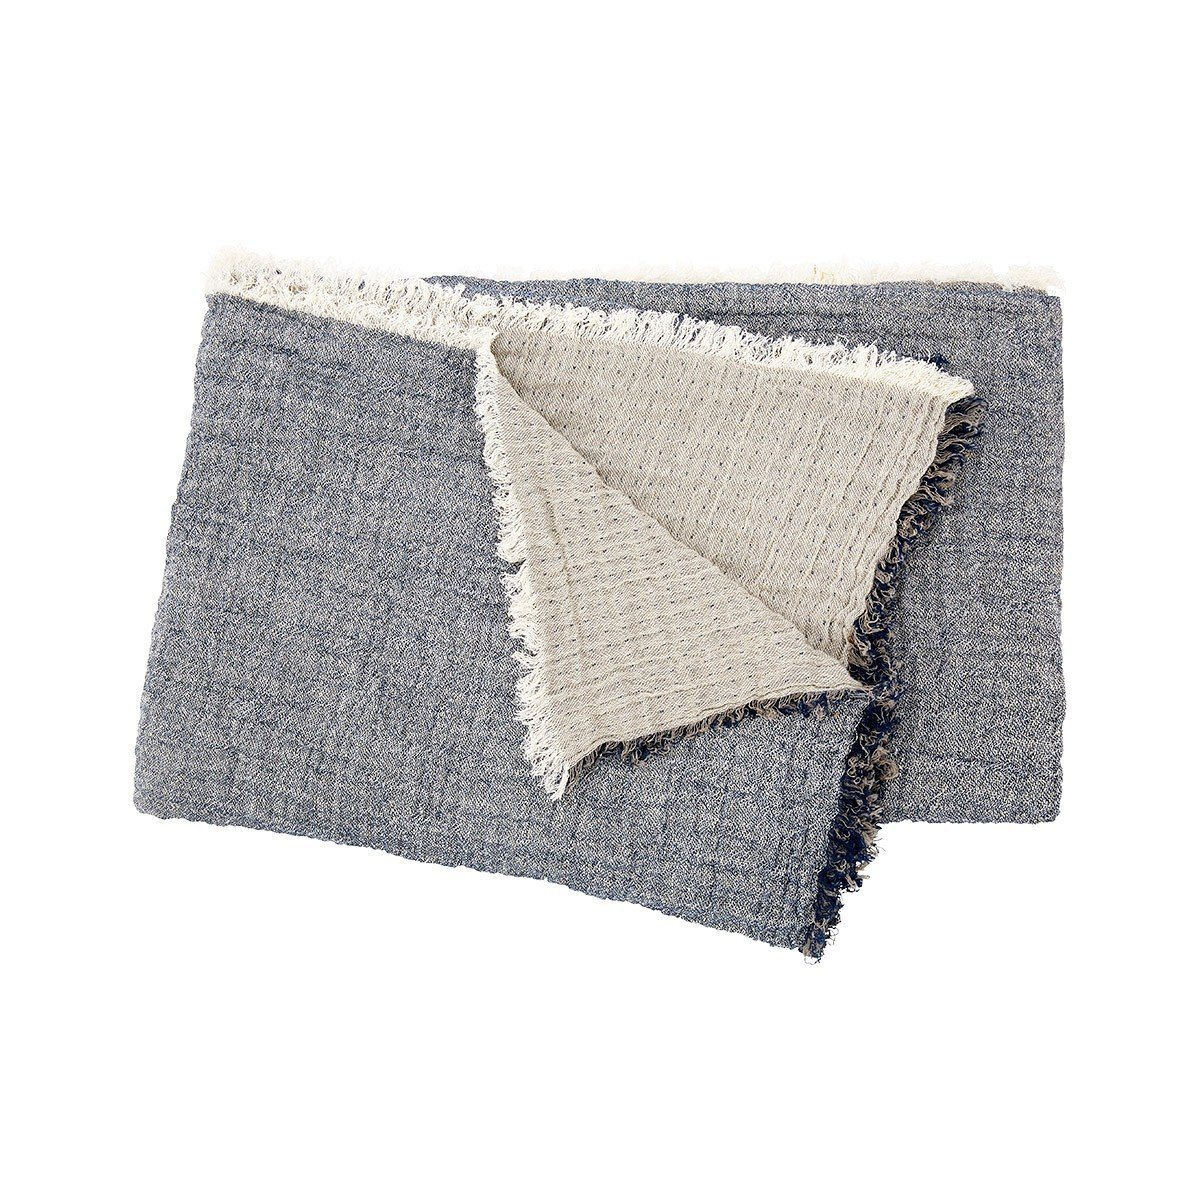 Minorque Ardoise Gray Throw with Fringe by Iosis | Fig Linens